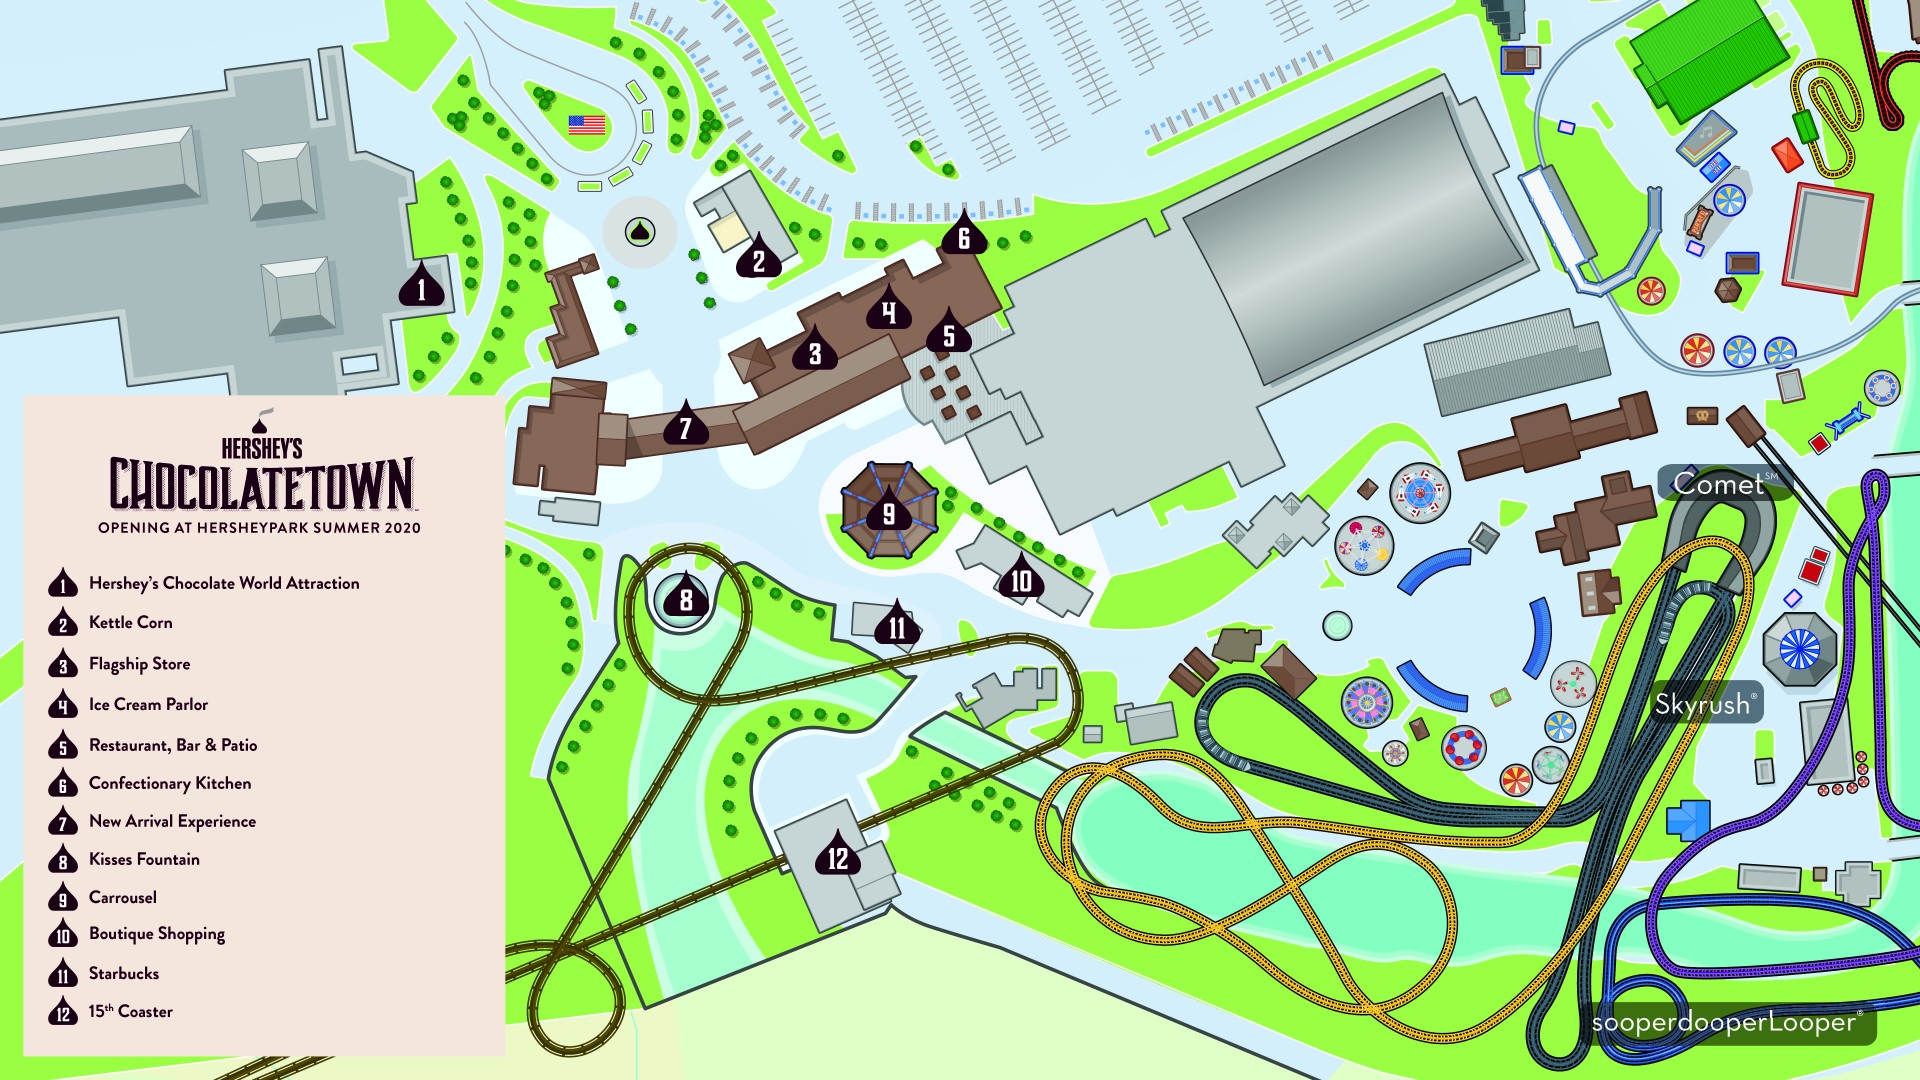 Hershey's Chocolatetown Map